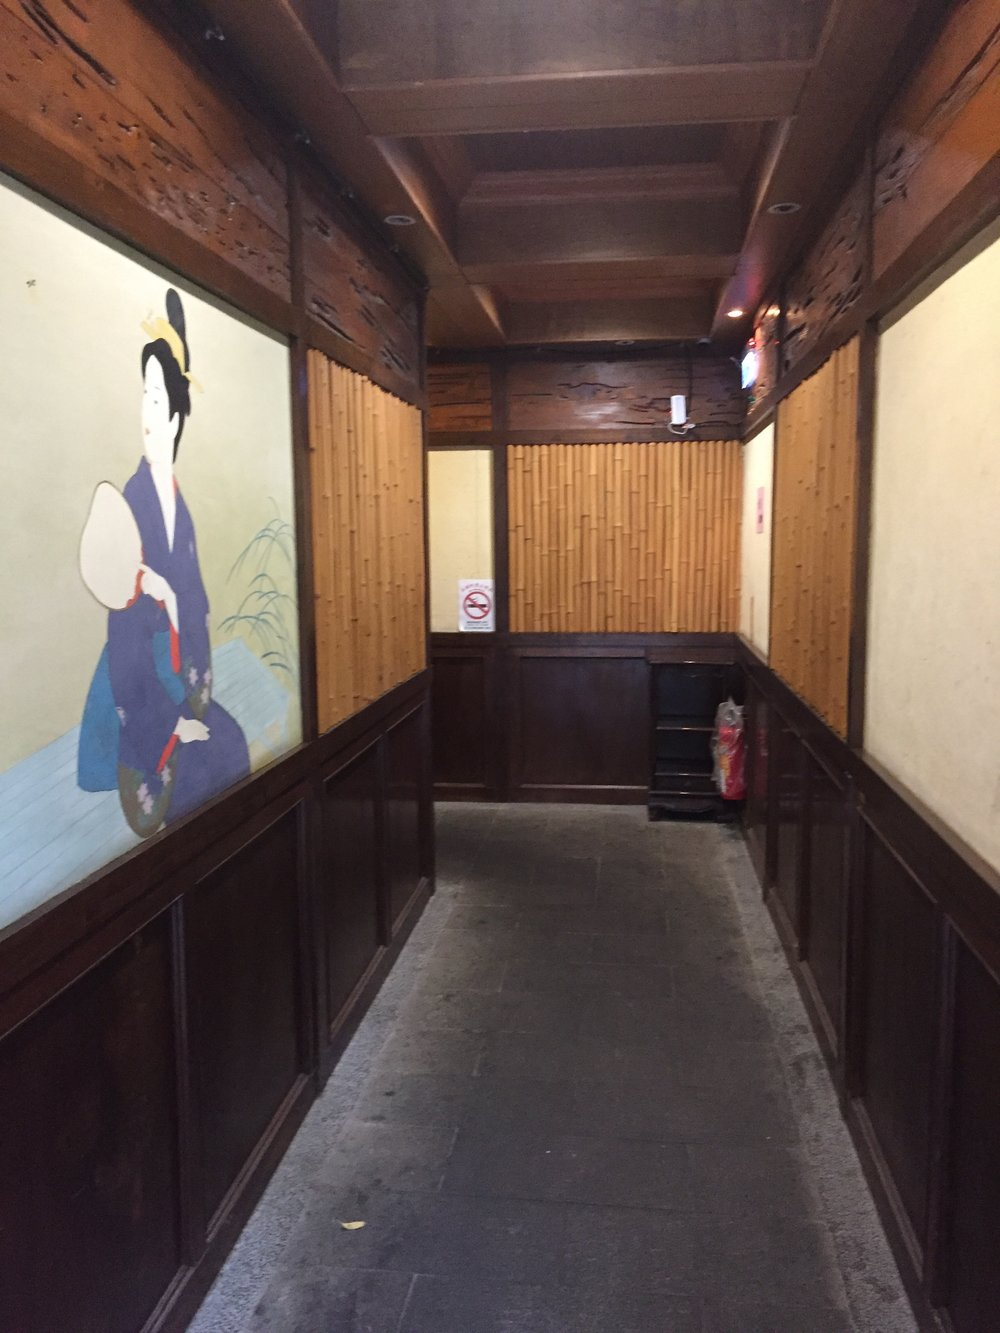 Hallway to private rooms with Japanese-style decor